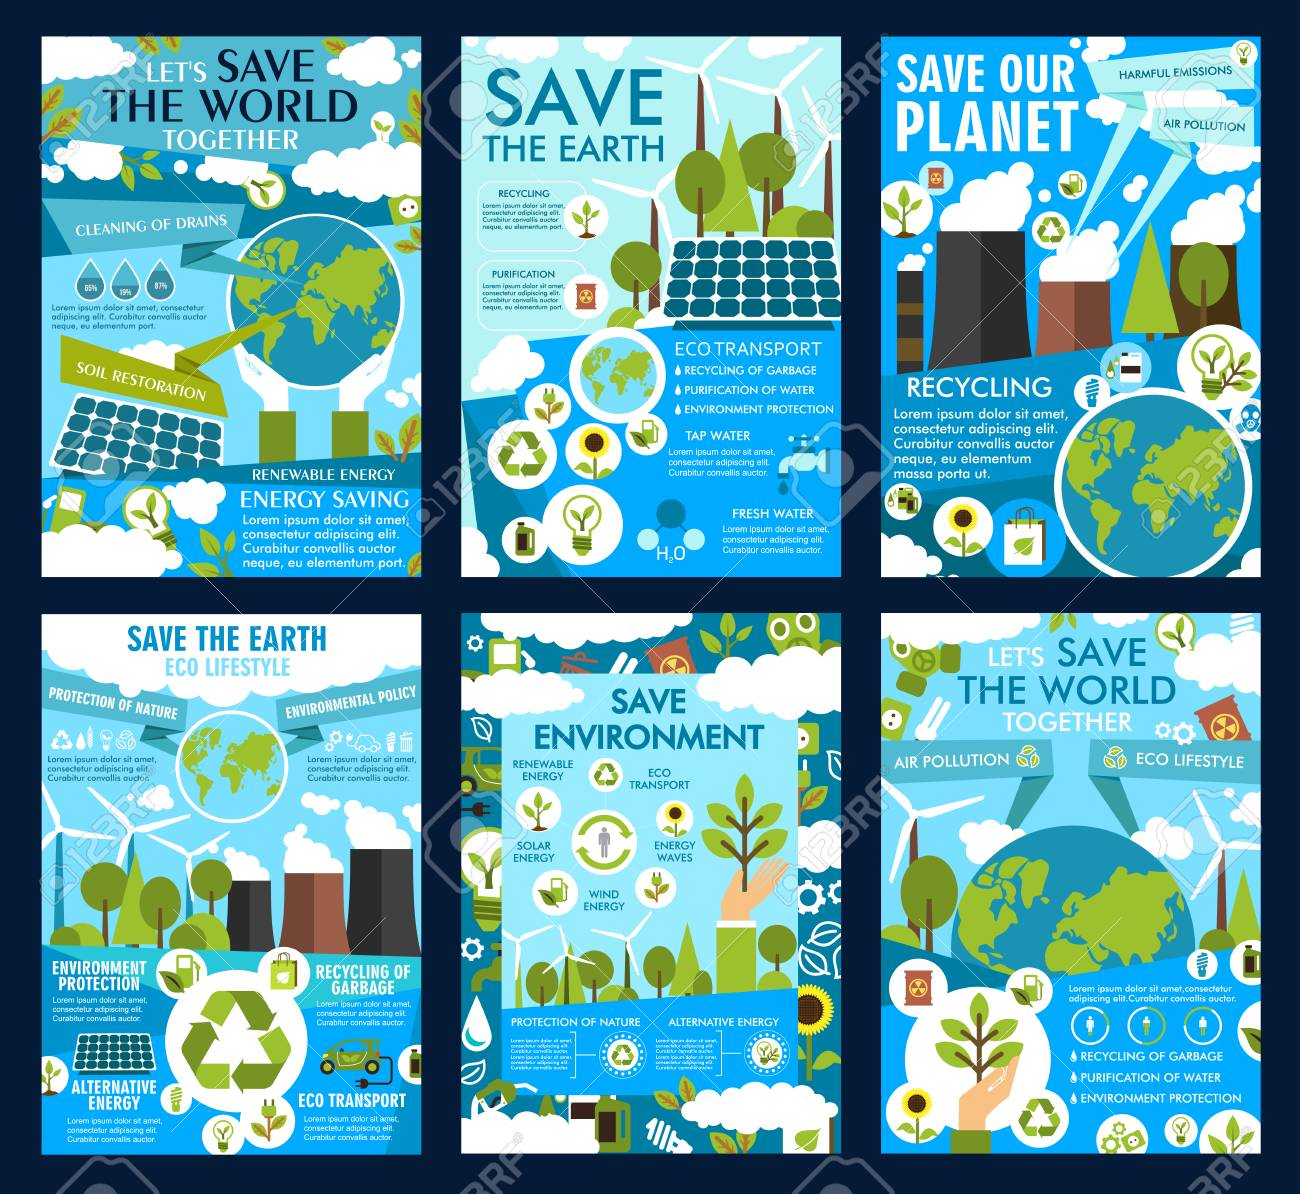 Save Earth Posters For Ecology Protection And Environment Conservation Royalty Free Cliparts Vectors And Stock Illustration Image 110288584